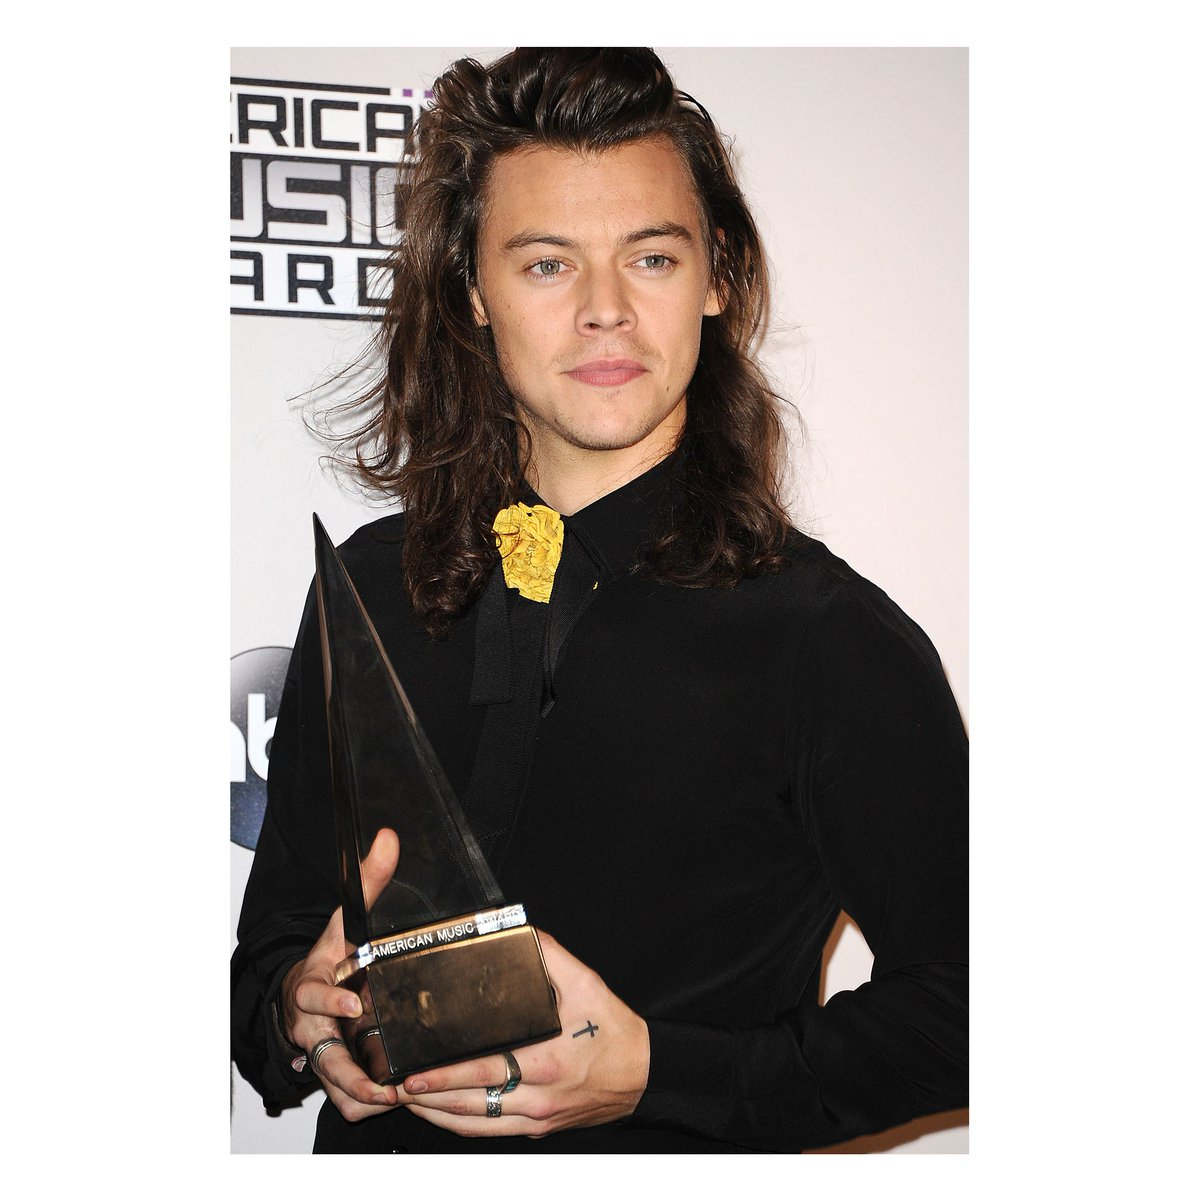 To accept @onedirection's awards onstage at @TheAMAs, Harry Styles wore a #GucciSS16 neck bow and yellow flower. https://t.co/aK9I7pzexP